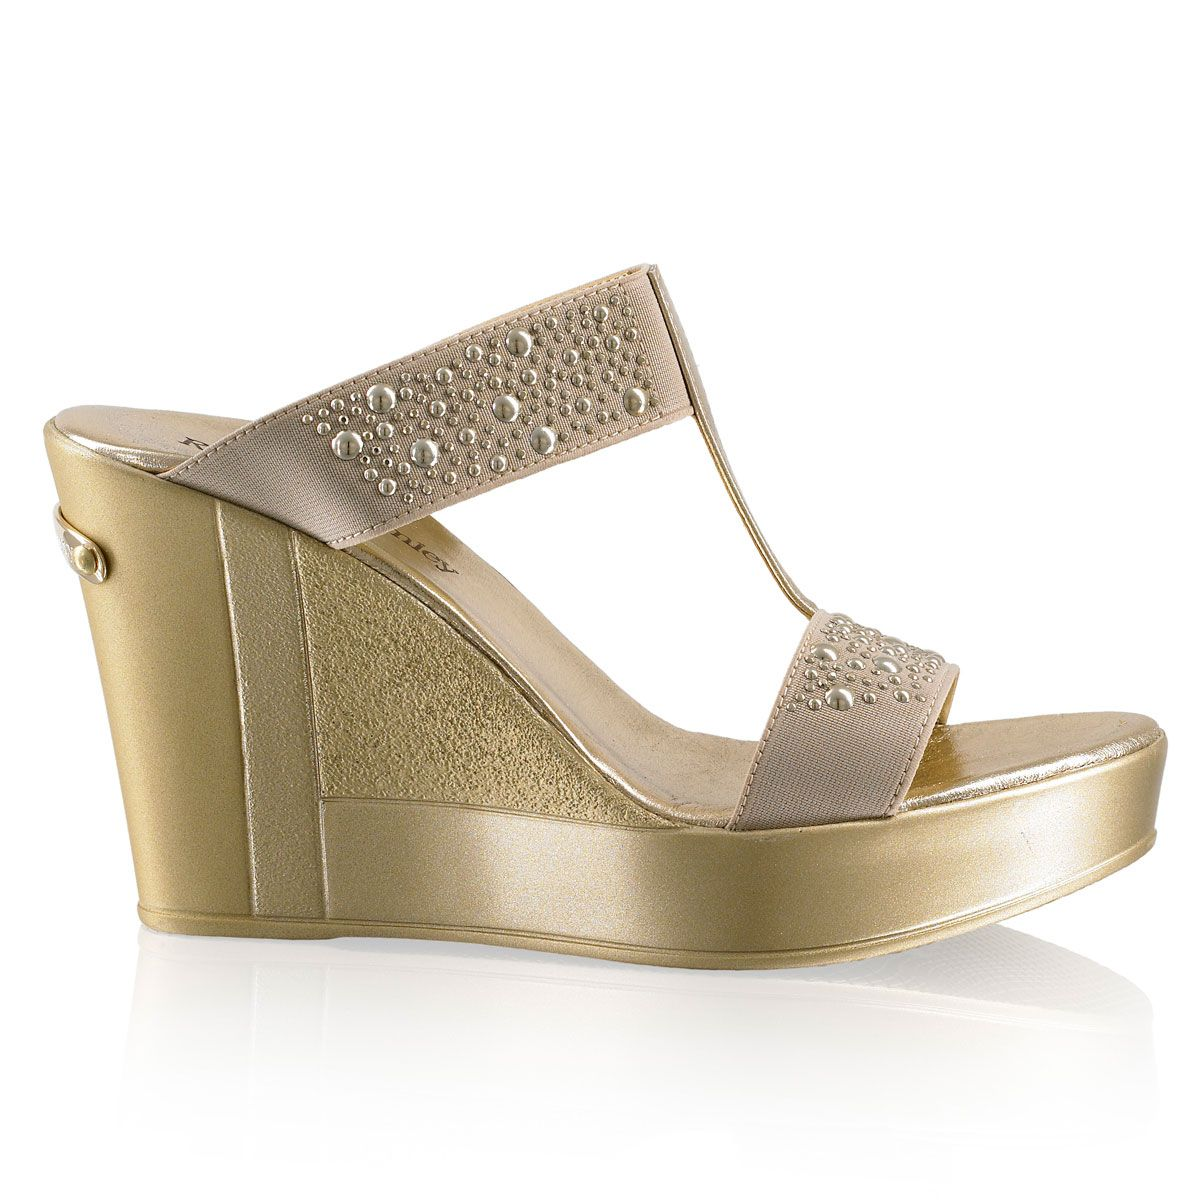 Womens sandals russell and bromley - Bella Russell And Bromley